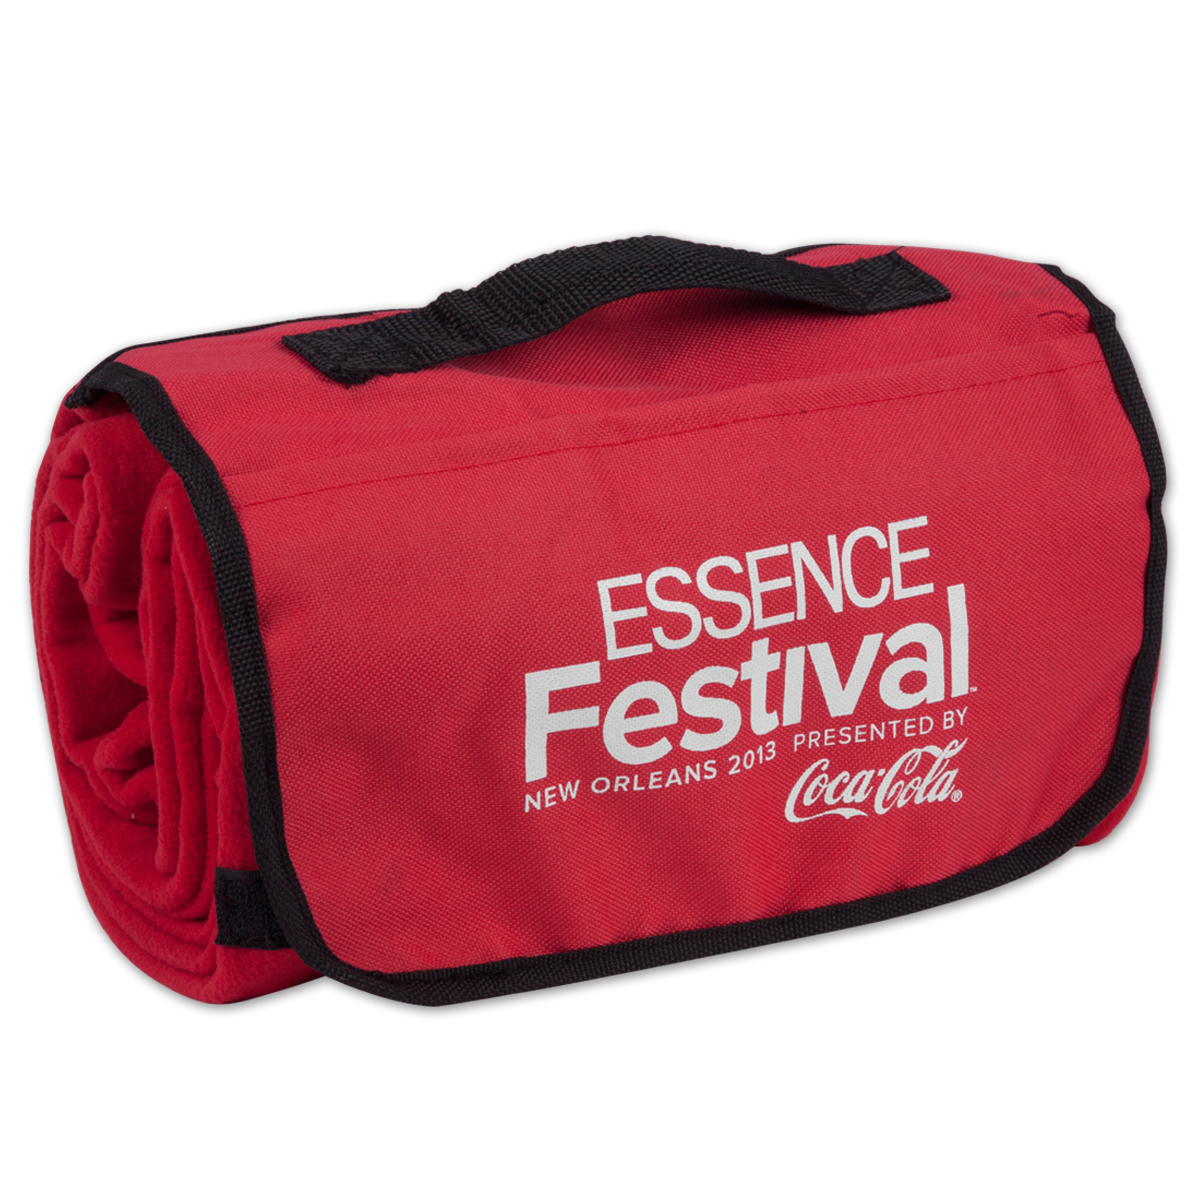 Essence Music Festival New Orleans 2013 Picnic Blanket